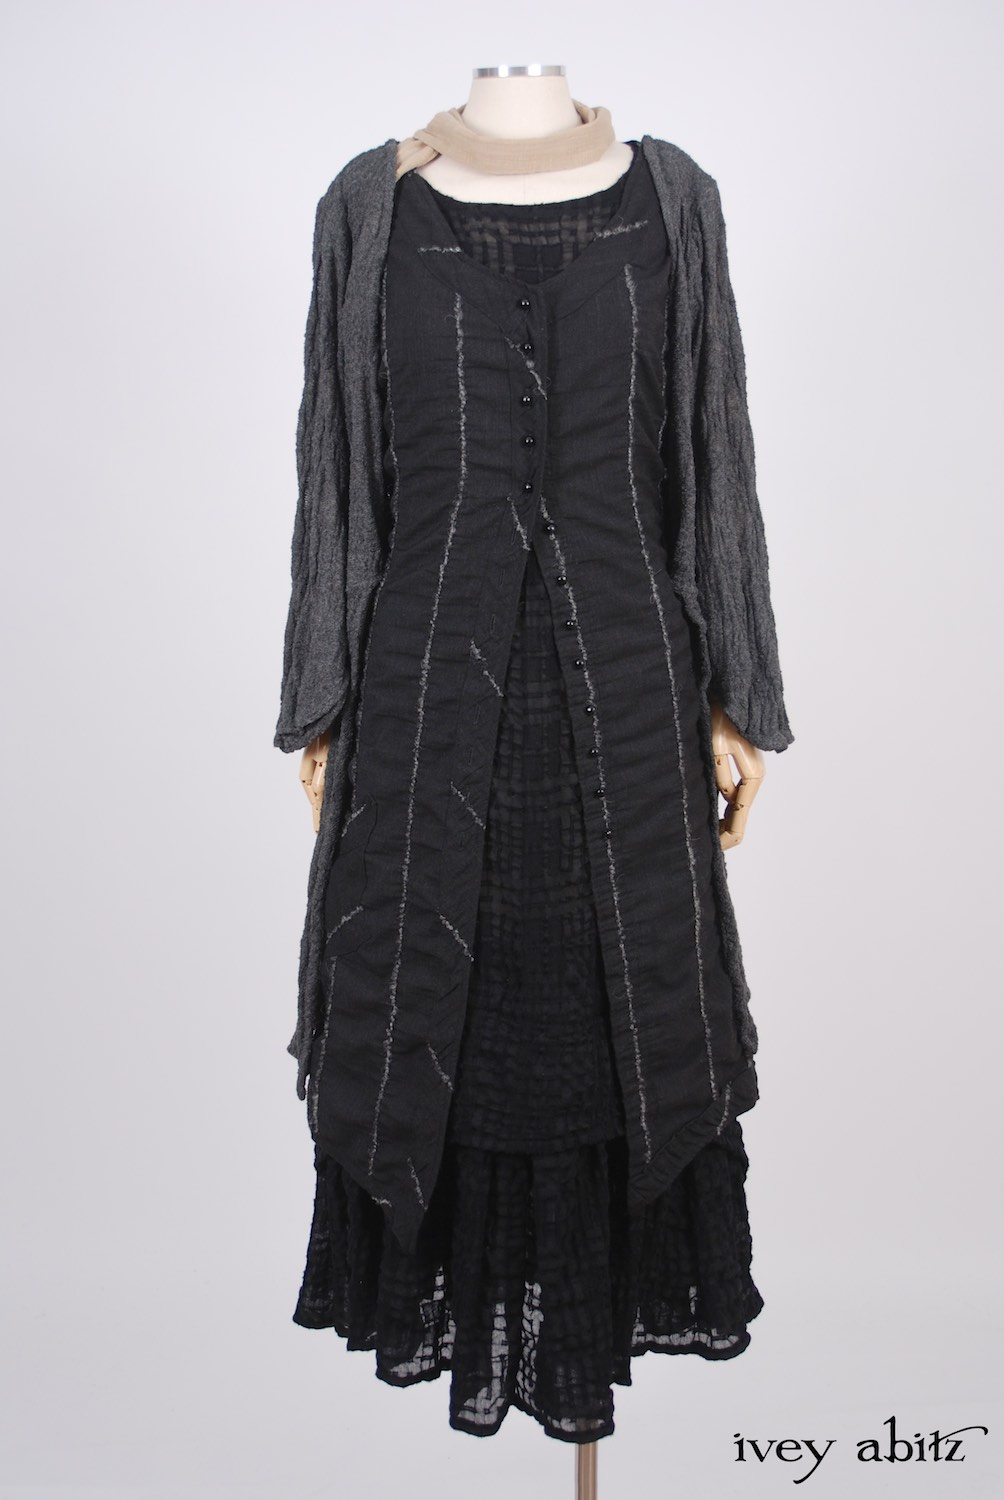 Ivey Abitz - Highbridge Duster Coat in Sparrow Grey Open Weave Knit  - Blanchefleur Sash in Blushed Plaid Voile - Highlands Frock in Blackbird Embroidered Striped Challis - Blanchefleur Frock in Blackbird Plaid Challis - Cilla Slip Frock in Dove Striped Voile, Flood Length